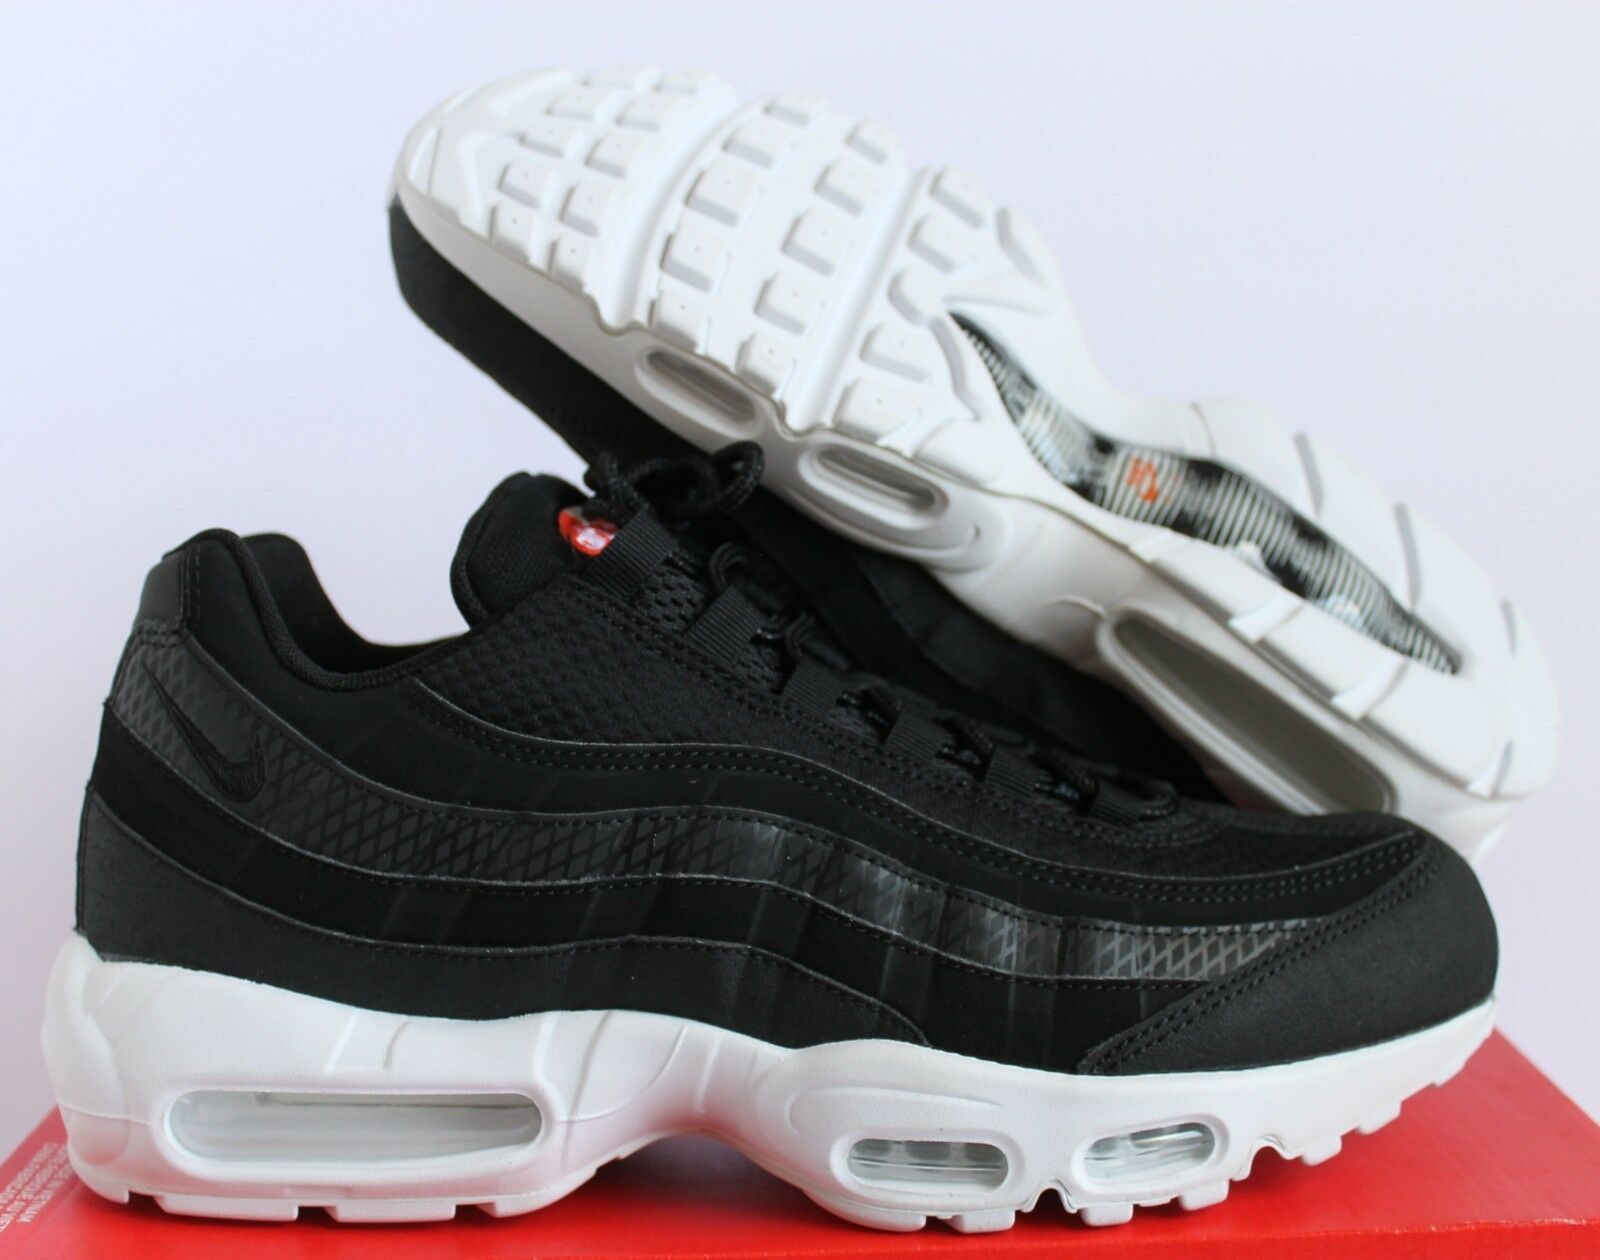 NIKE AIR MAX 95 PREMIUM SE BLACK-WHITE-TEAM orange SZ 10.5